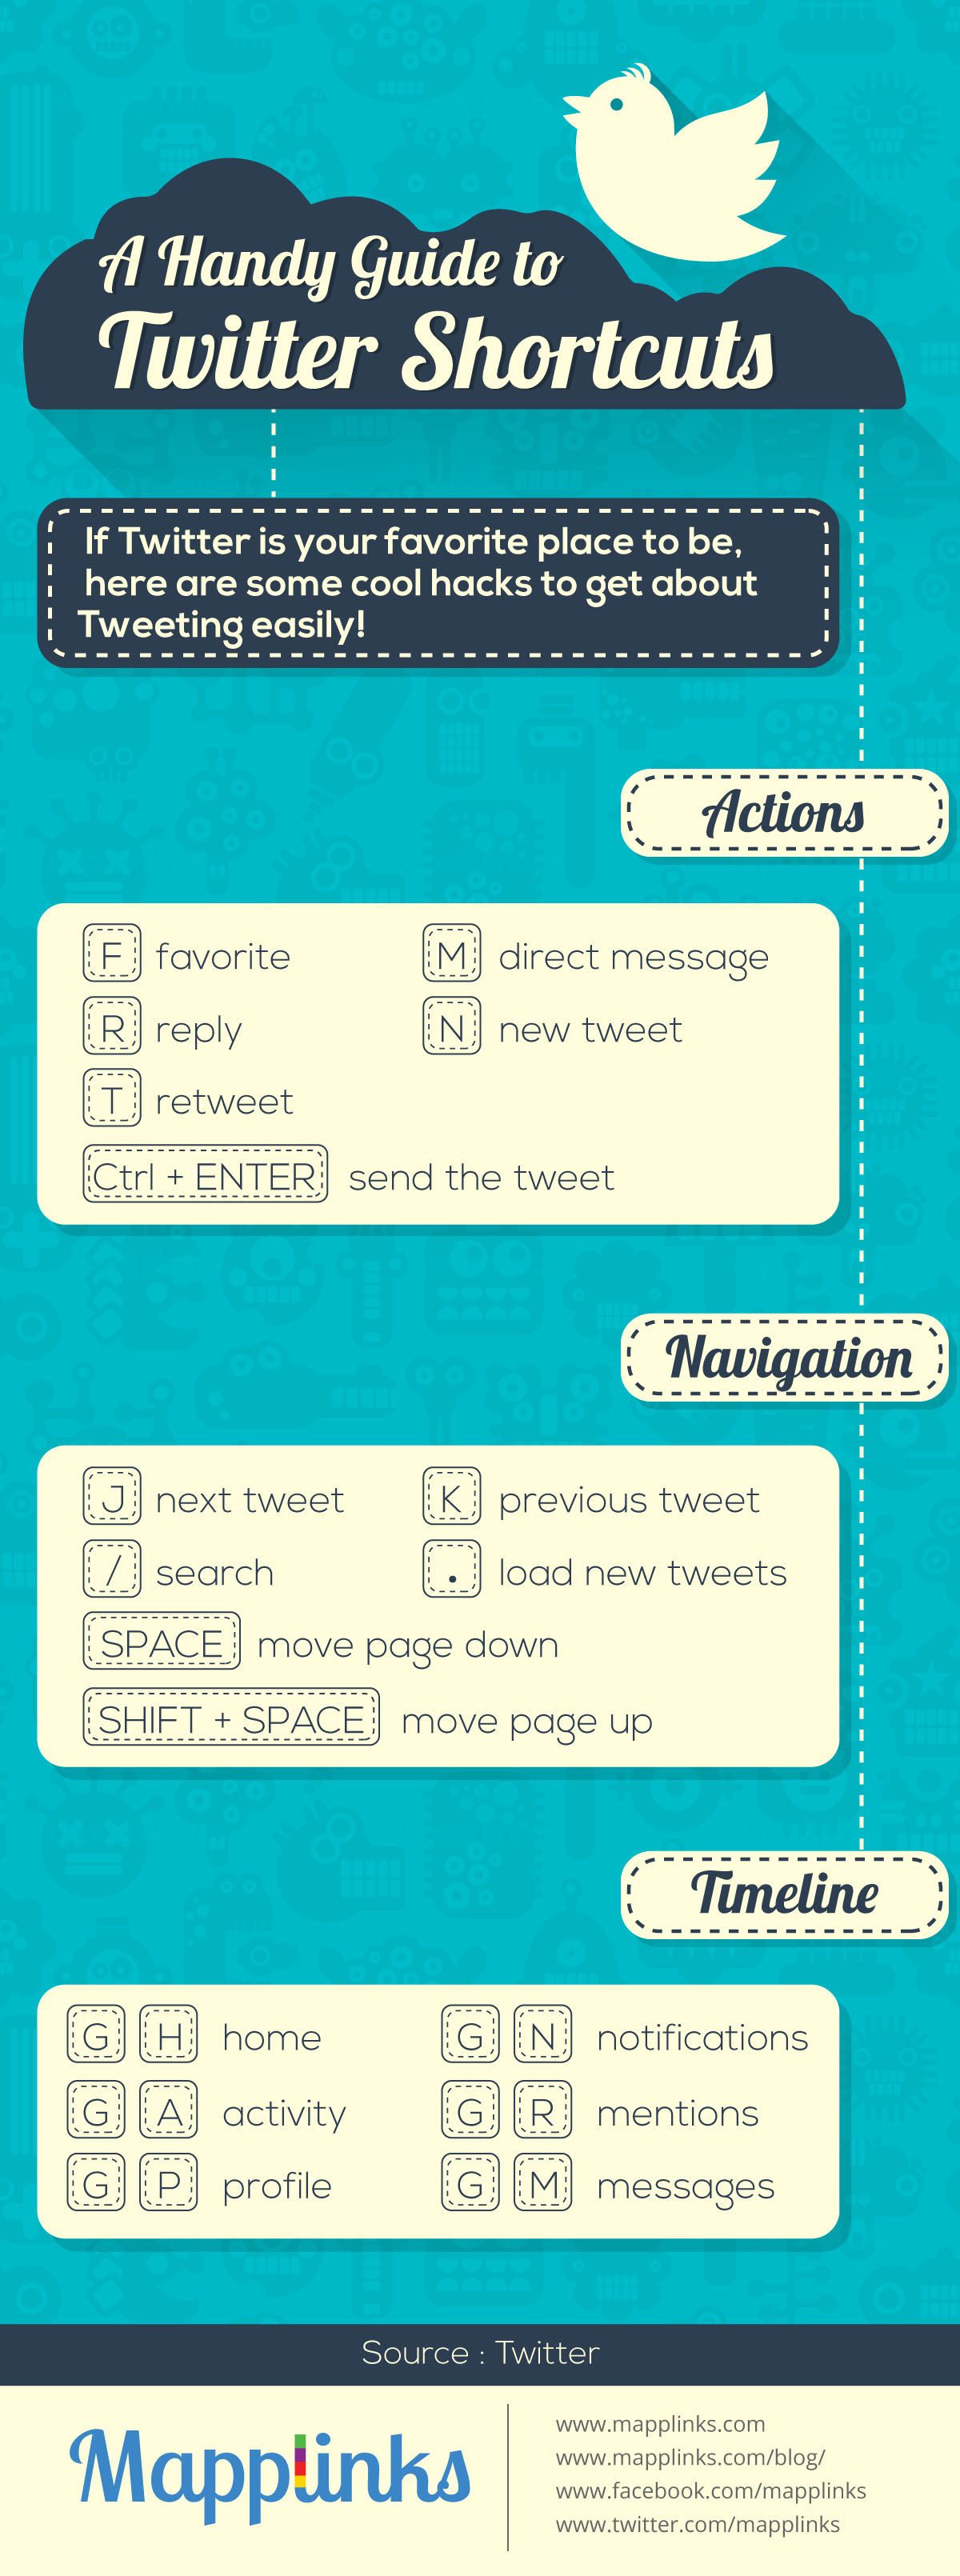 Hady-guide-to-twitter-shortcuts infographic